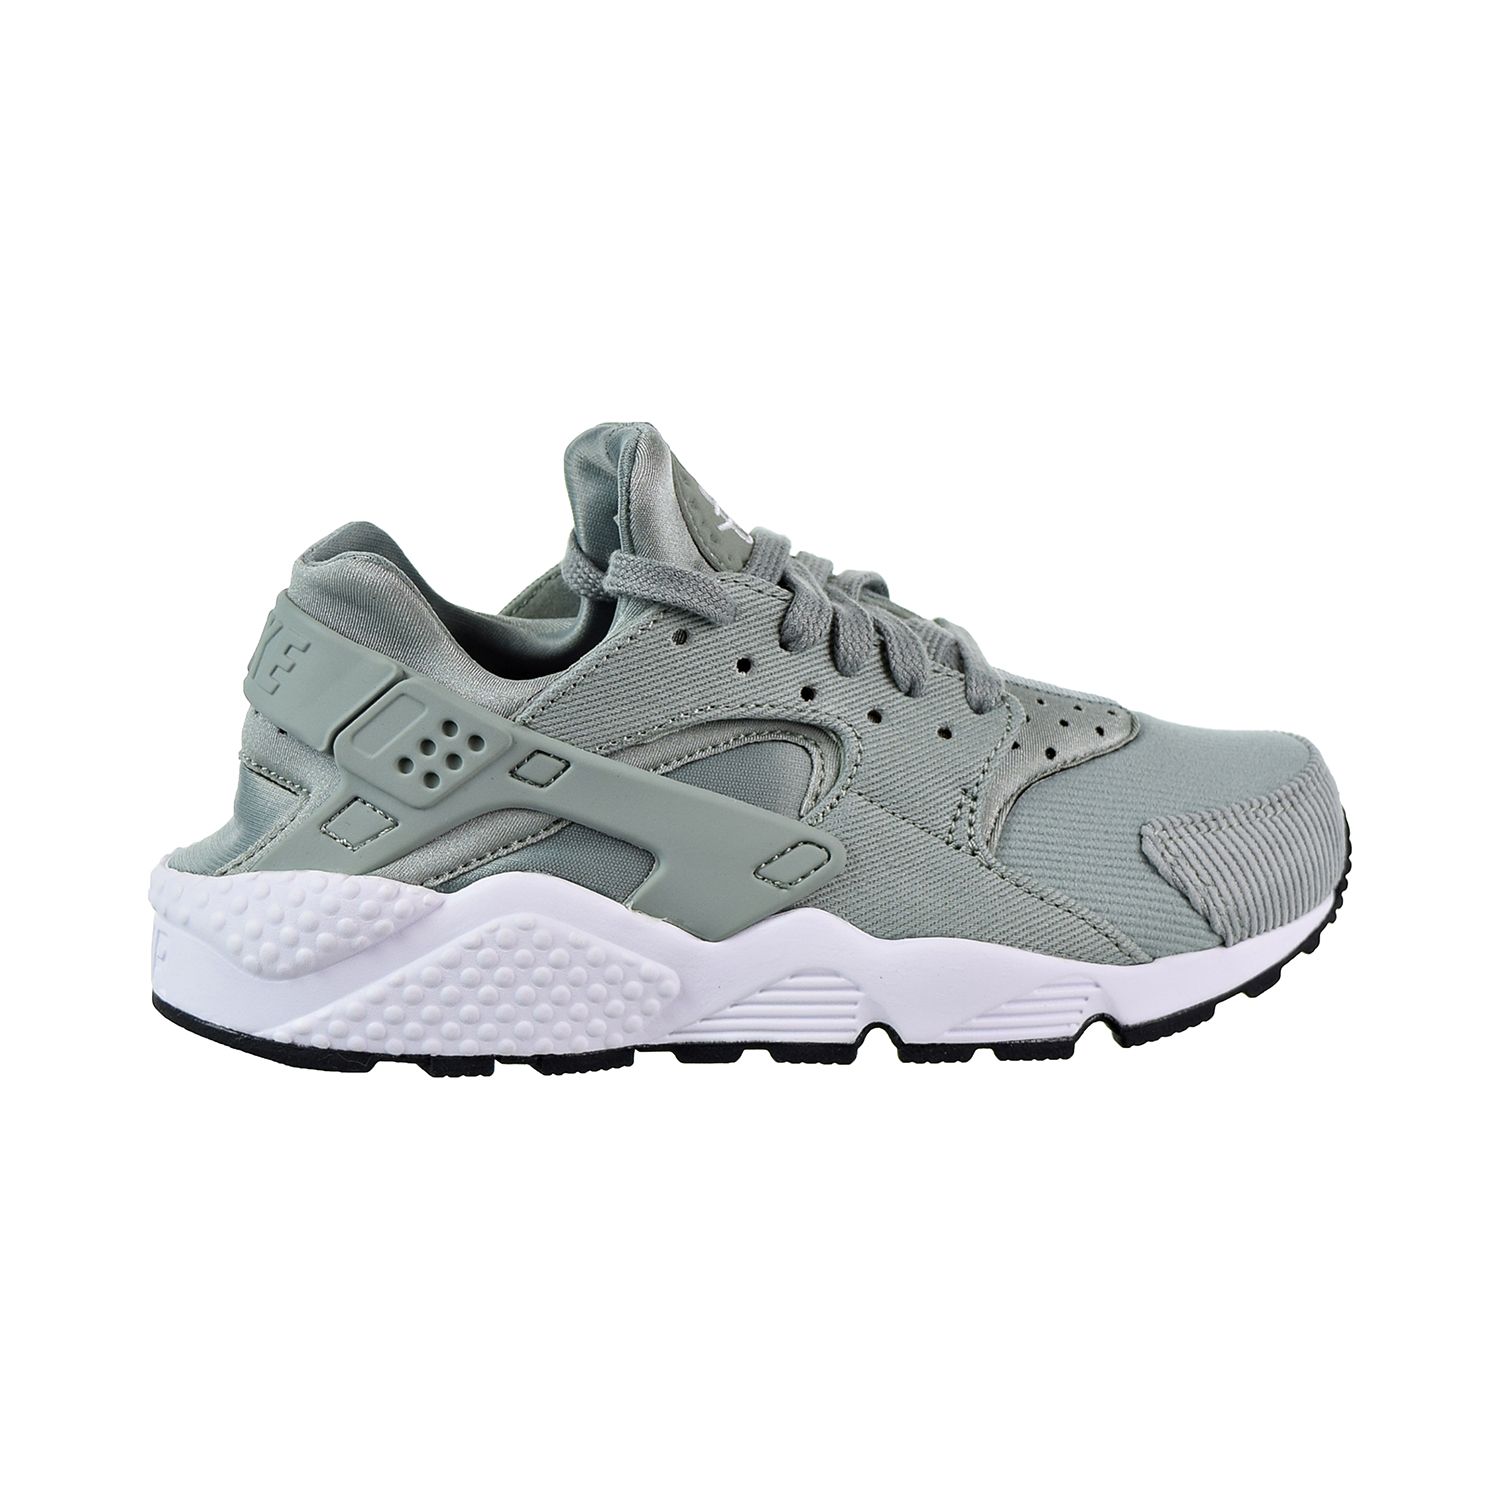 d89e2ee0757ae Details about Nike Air Huarache Run SE Women s Shoes Mica Green Black White  859429-301